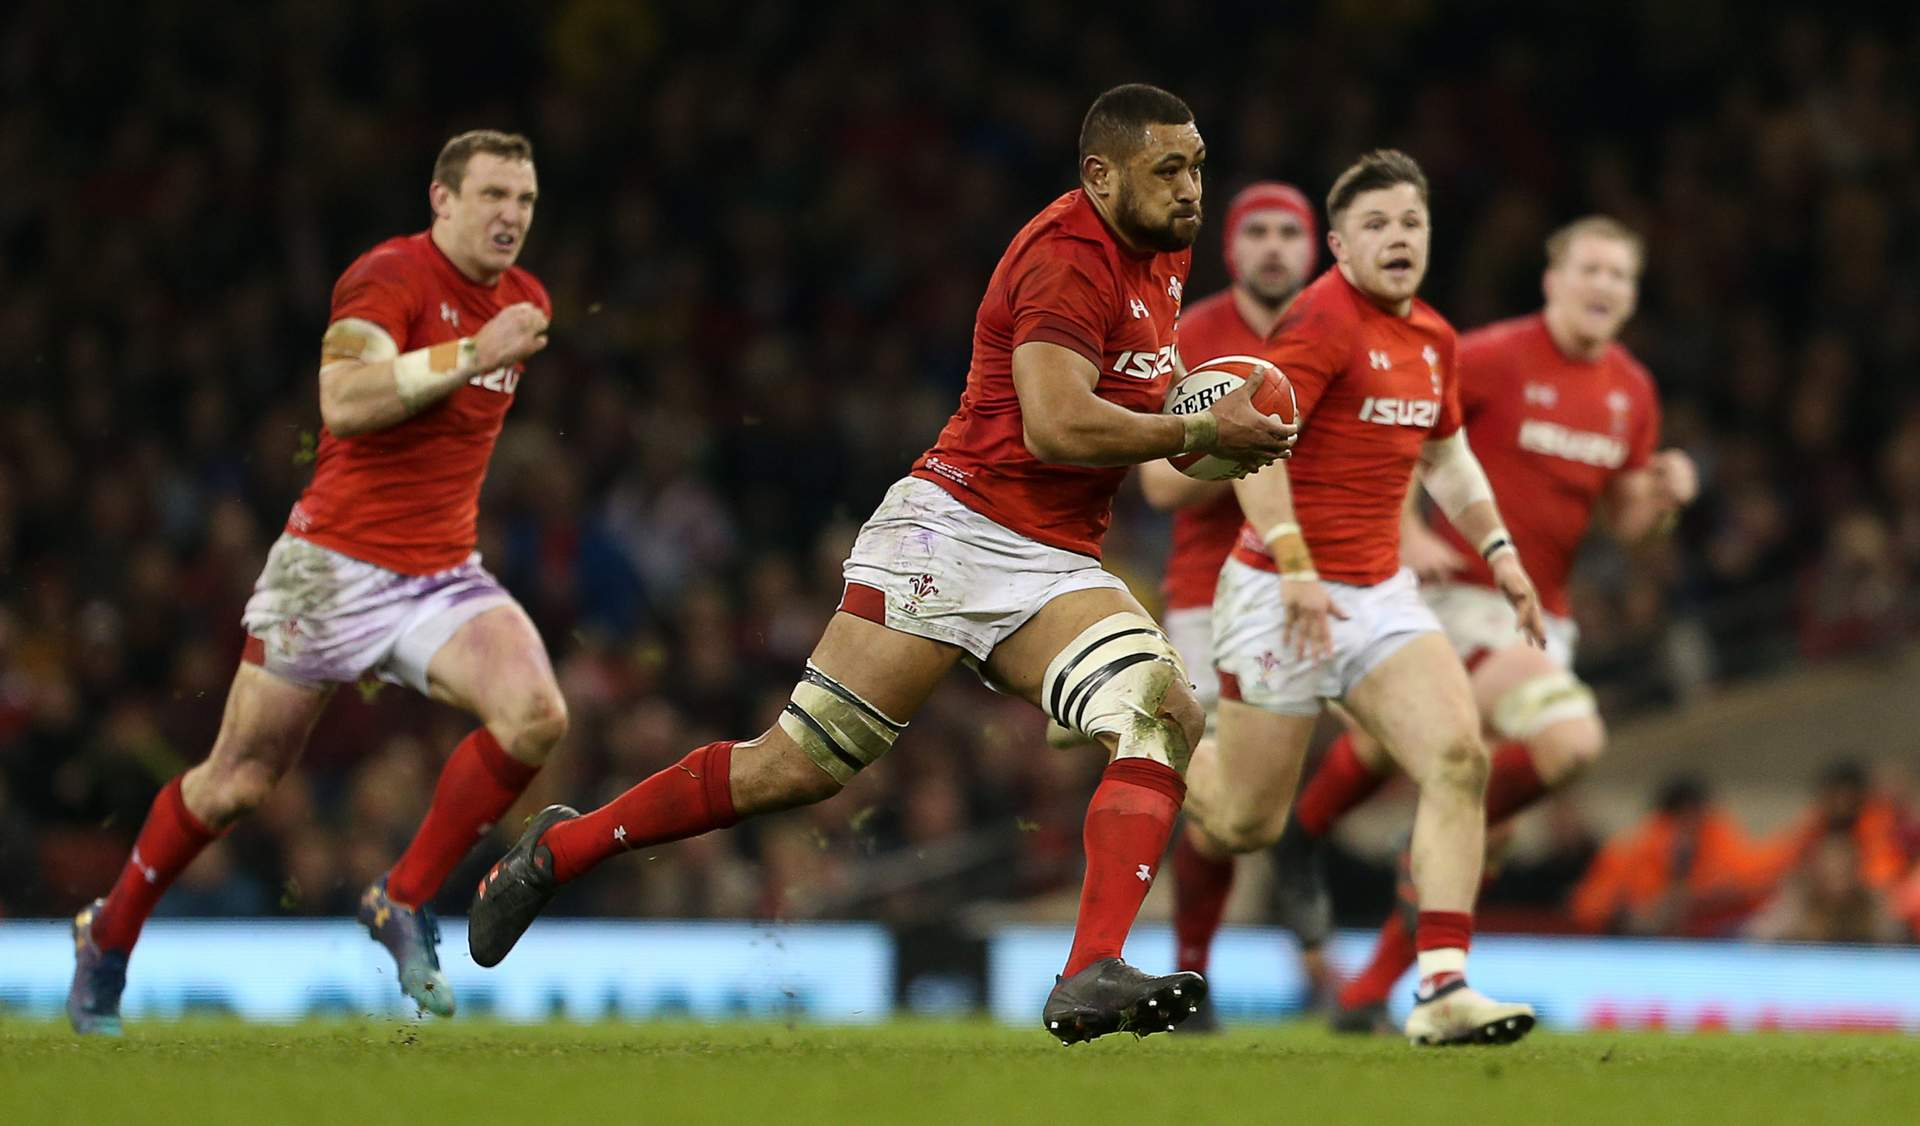 Faletau confident Wales are heading in right direction